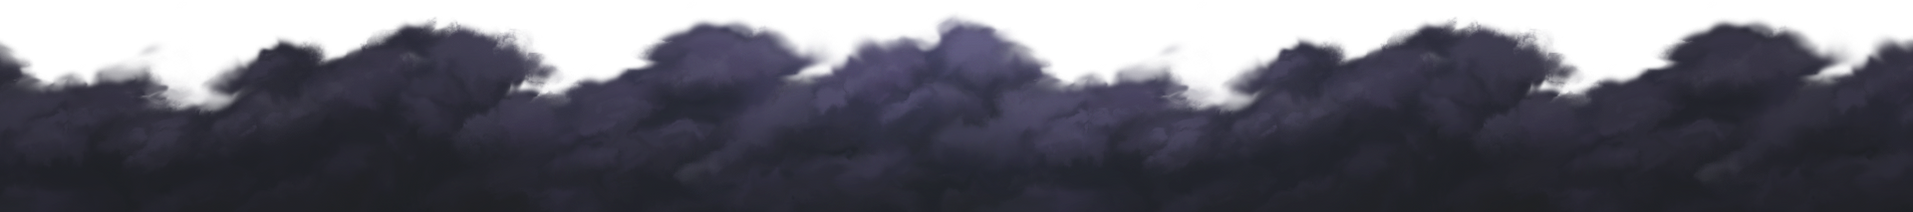 web_clouds4.png